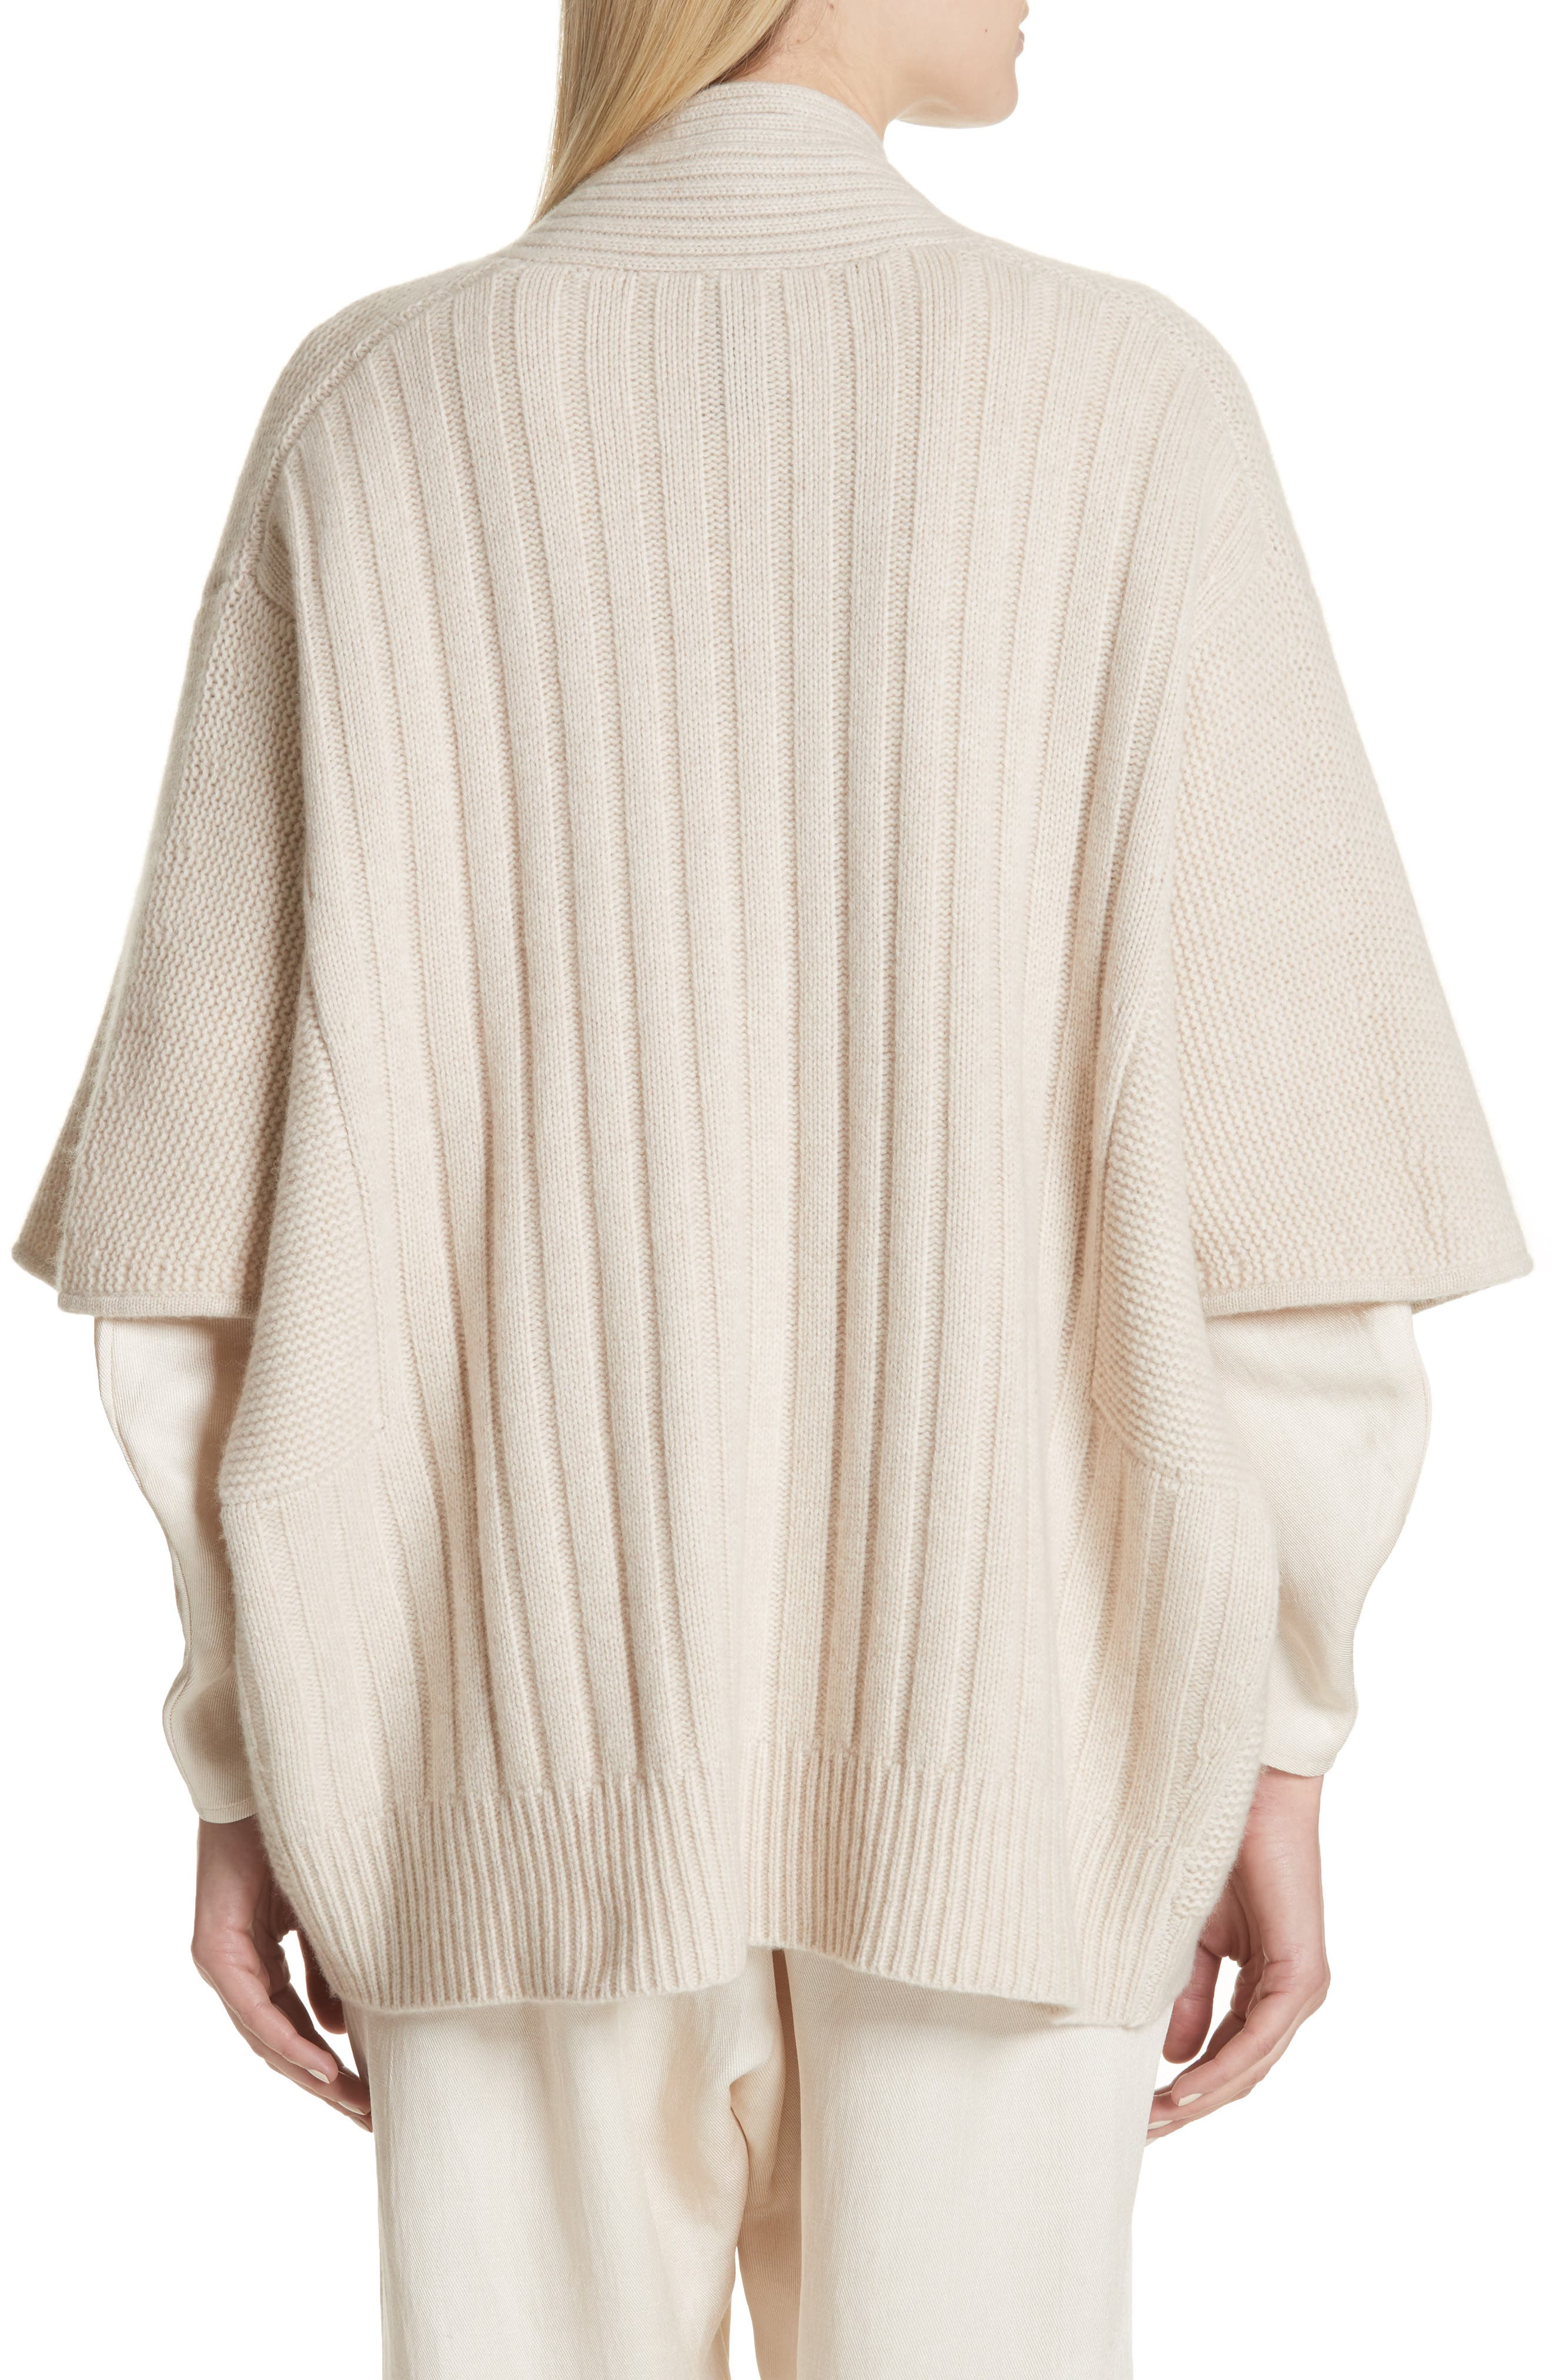 Cashmere & Merino Wool Cardigan,                             Alternate thumbnail 2, color,